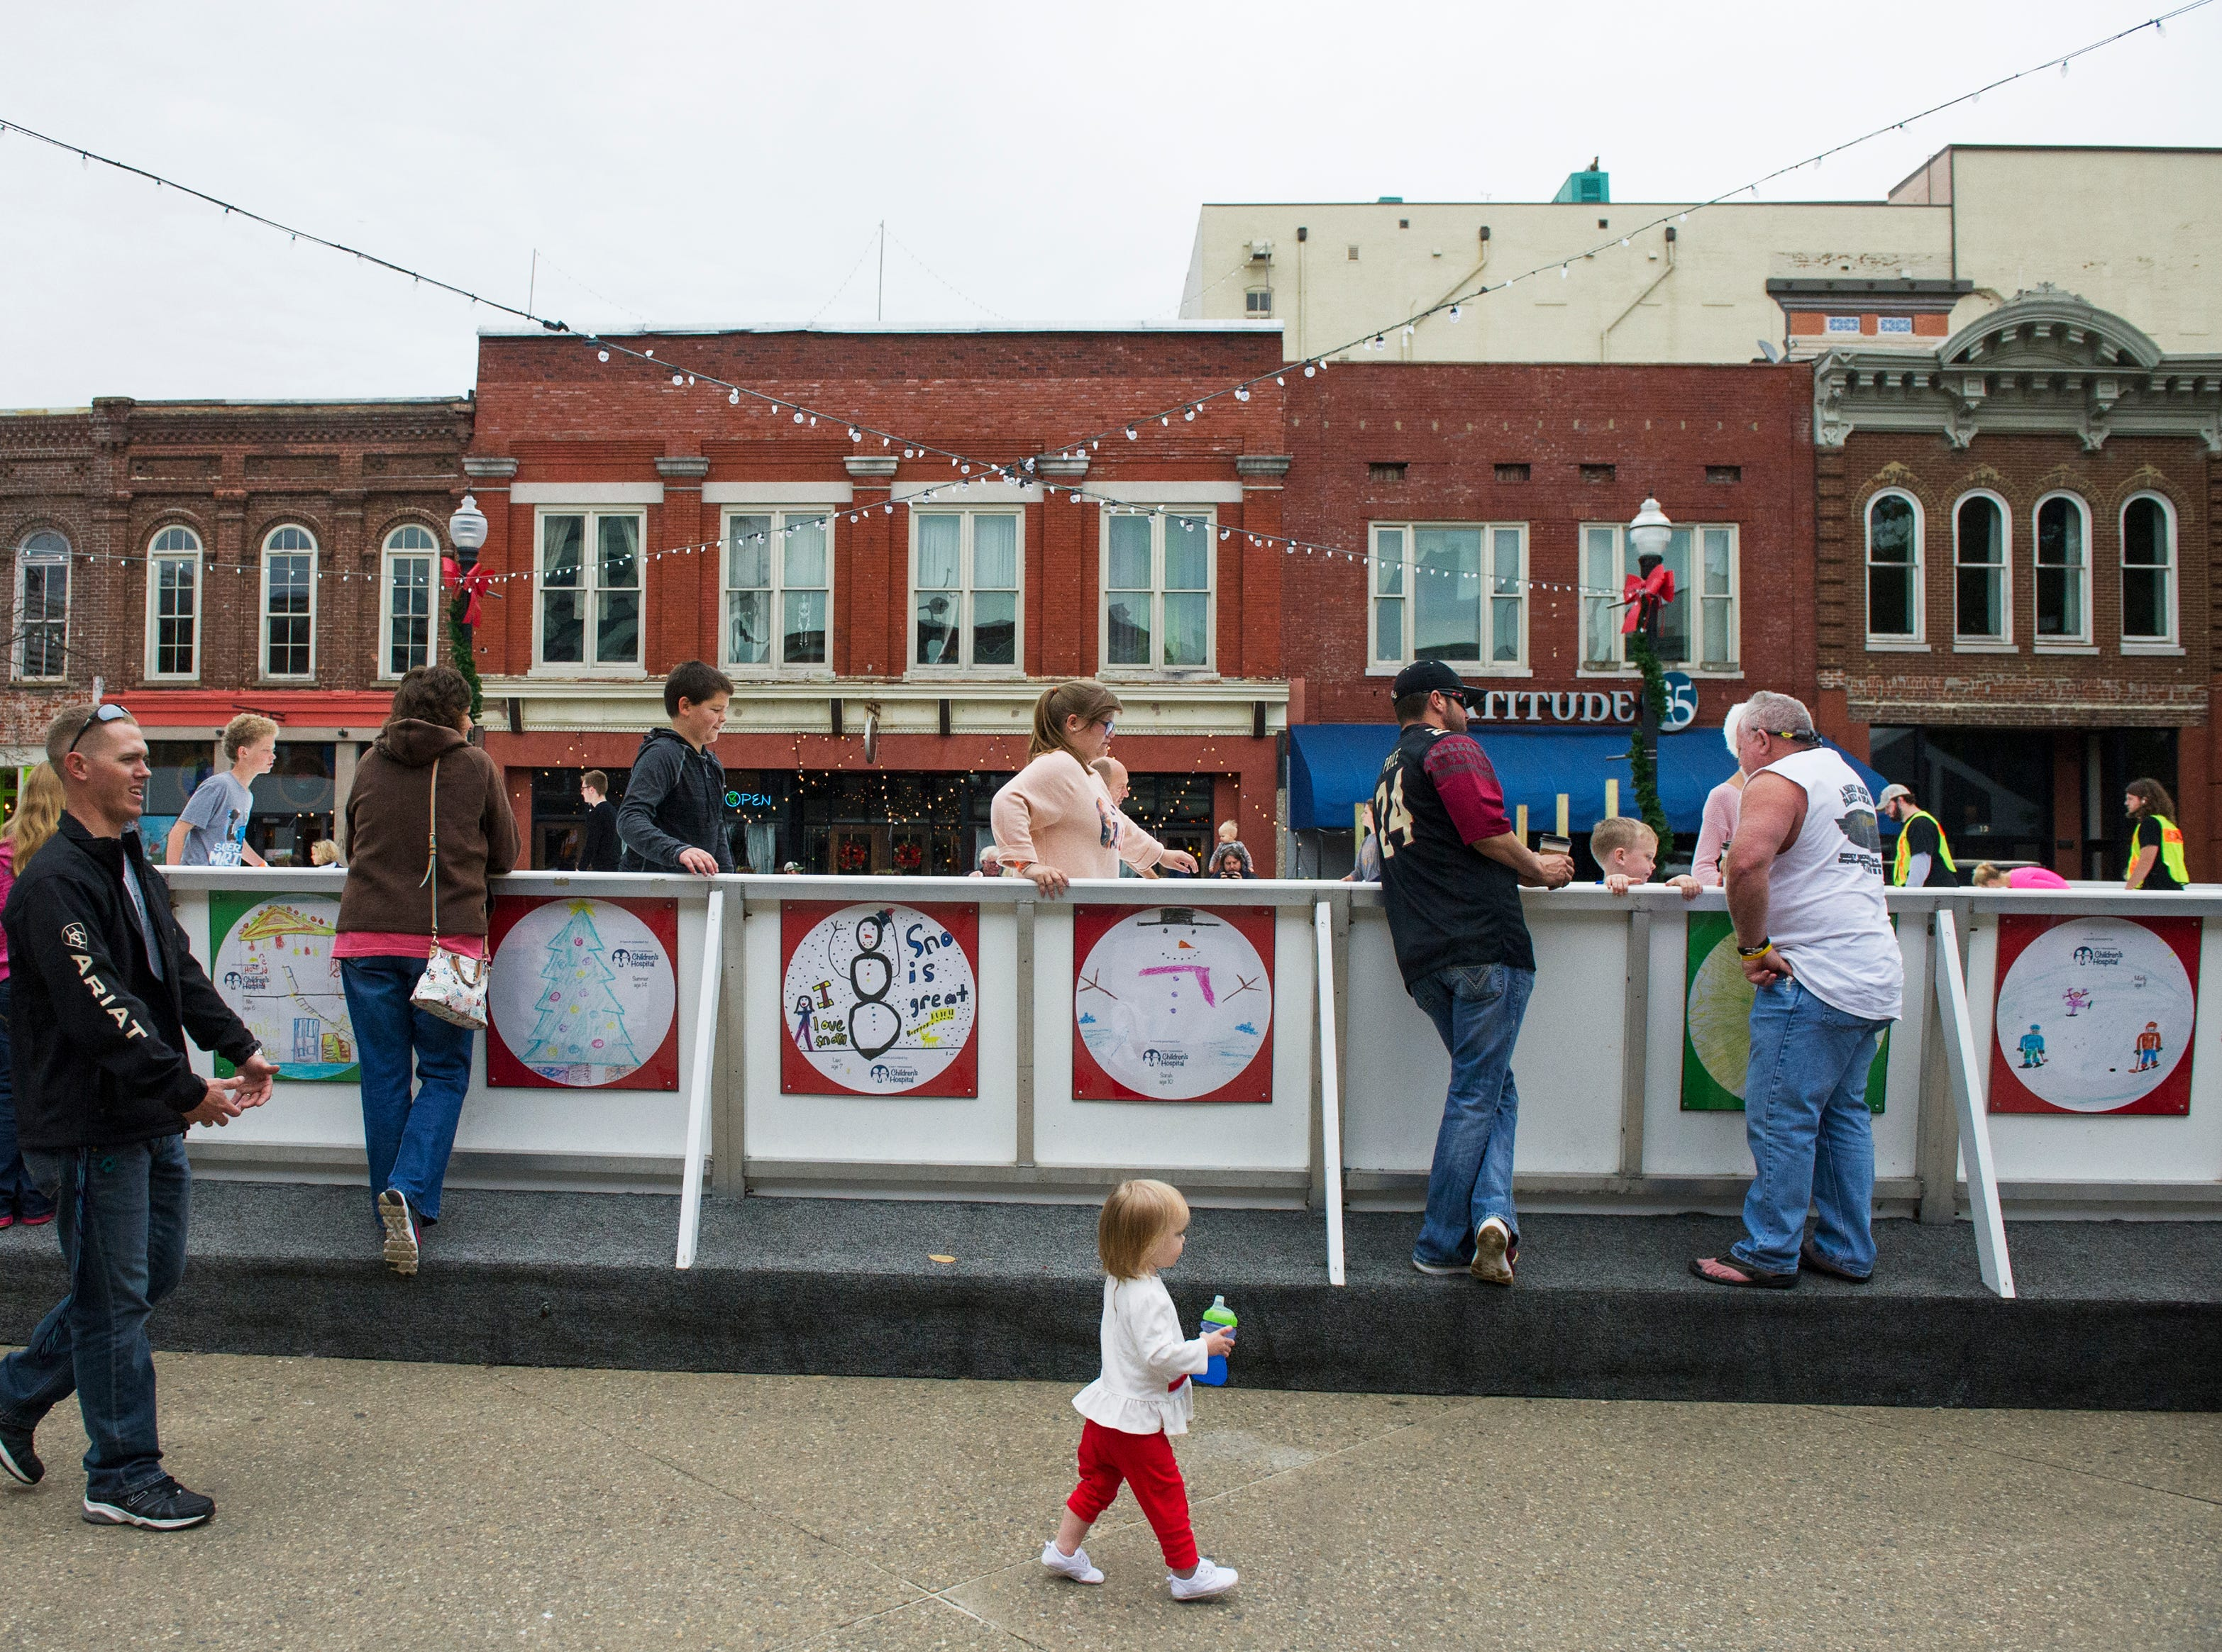 Families gather to enjoy the opening weekend for the Market Square ice skating rink Saturday, Nov. 28, 2015.